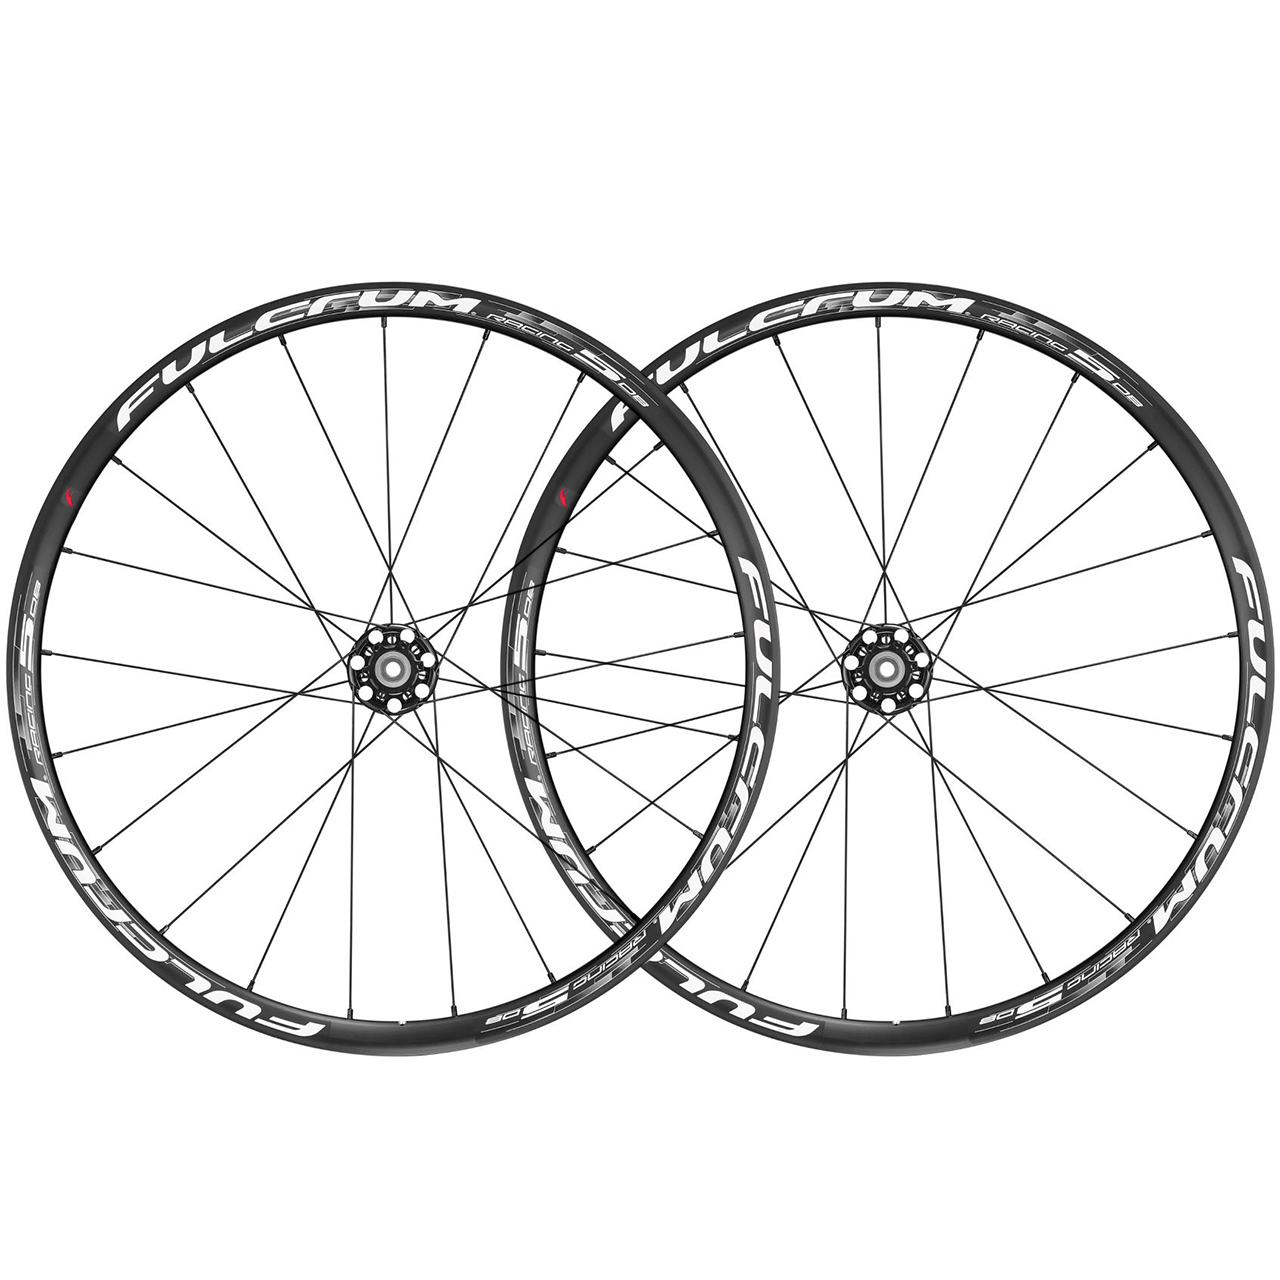 Fulcrum Racing 5 LG Disc Road Wheelset - 2017